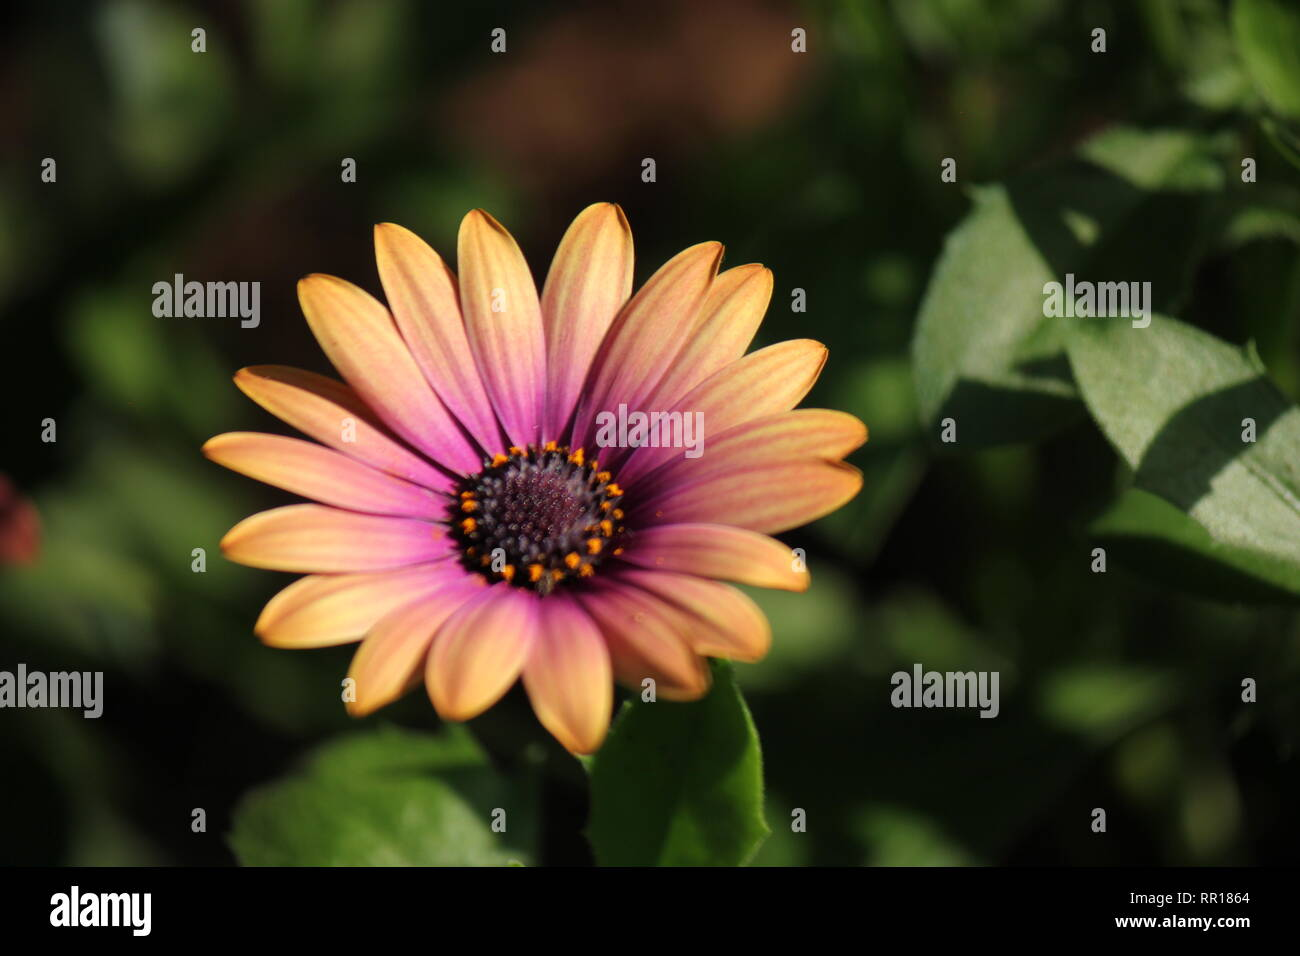 Stunning, flawless flowering African Daisy, Osteospermum ecklonis, Zion Blue Denim, plant at the Garfield Park Conservatory in Chicago, Illinois. - Stock Image